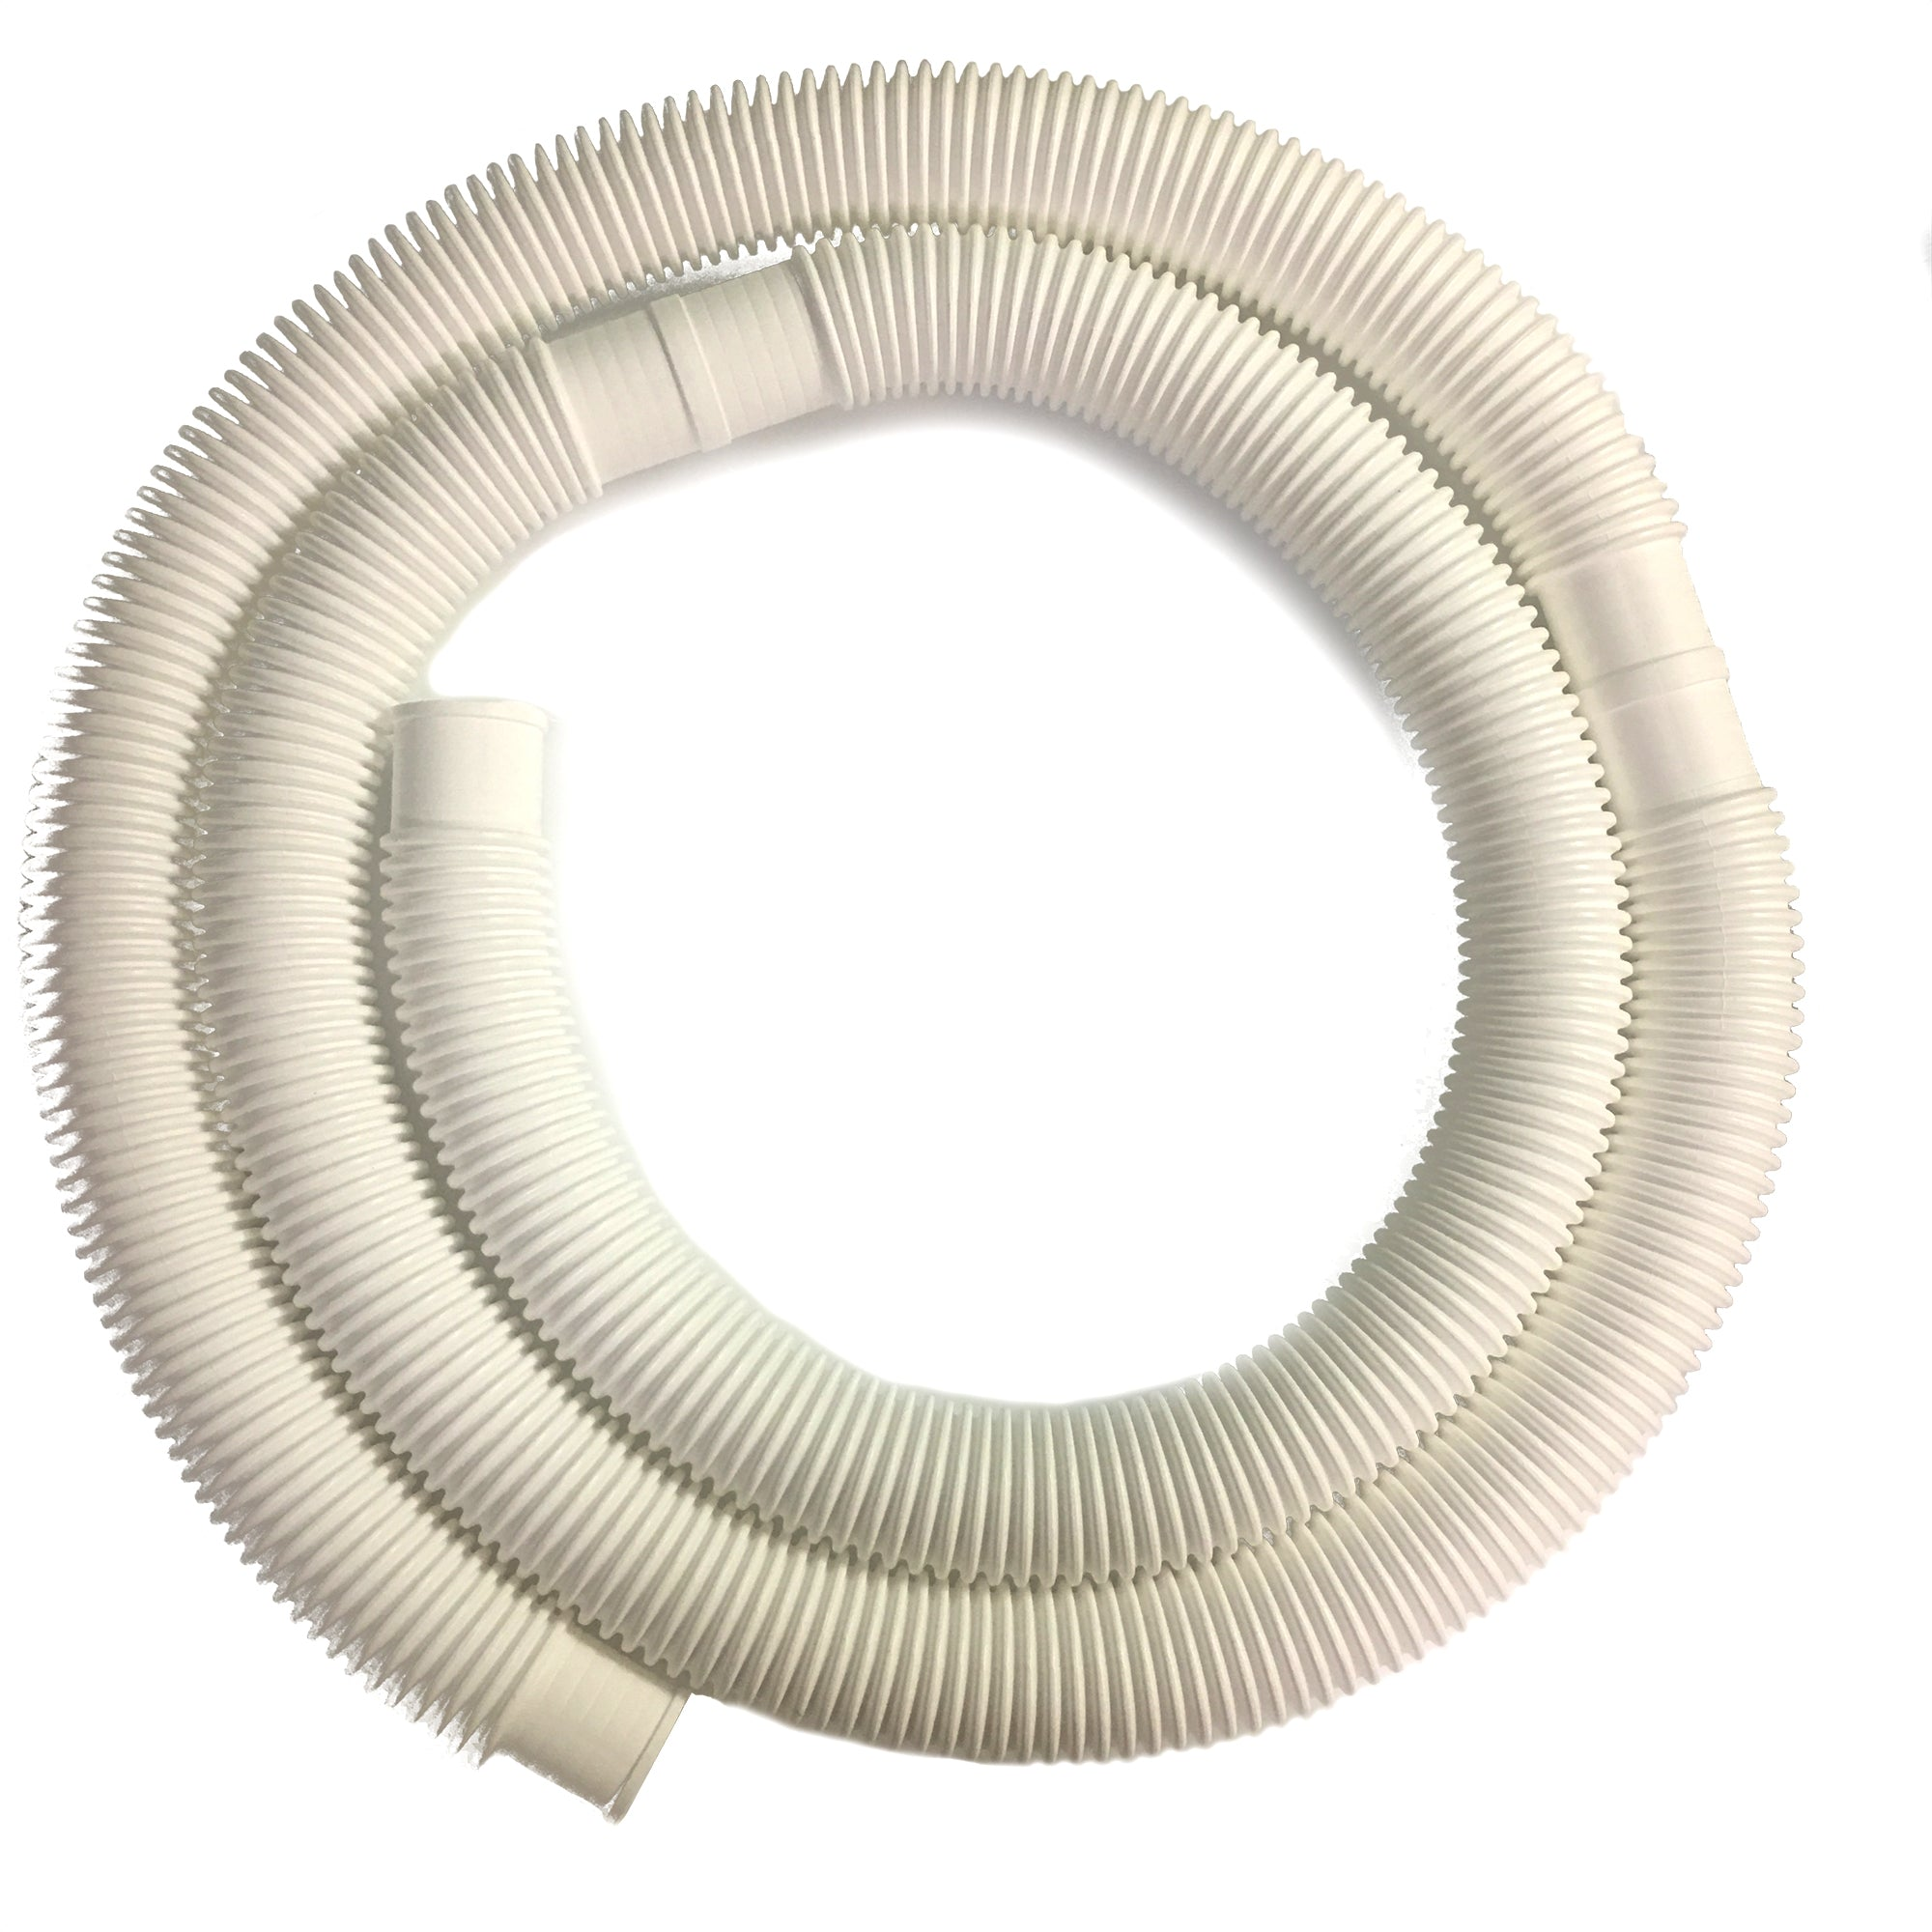 1-1/4 Inch x 15 Foot Long White Above Ground Filter Connection Hose